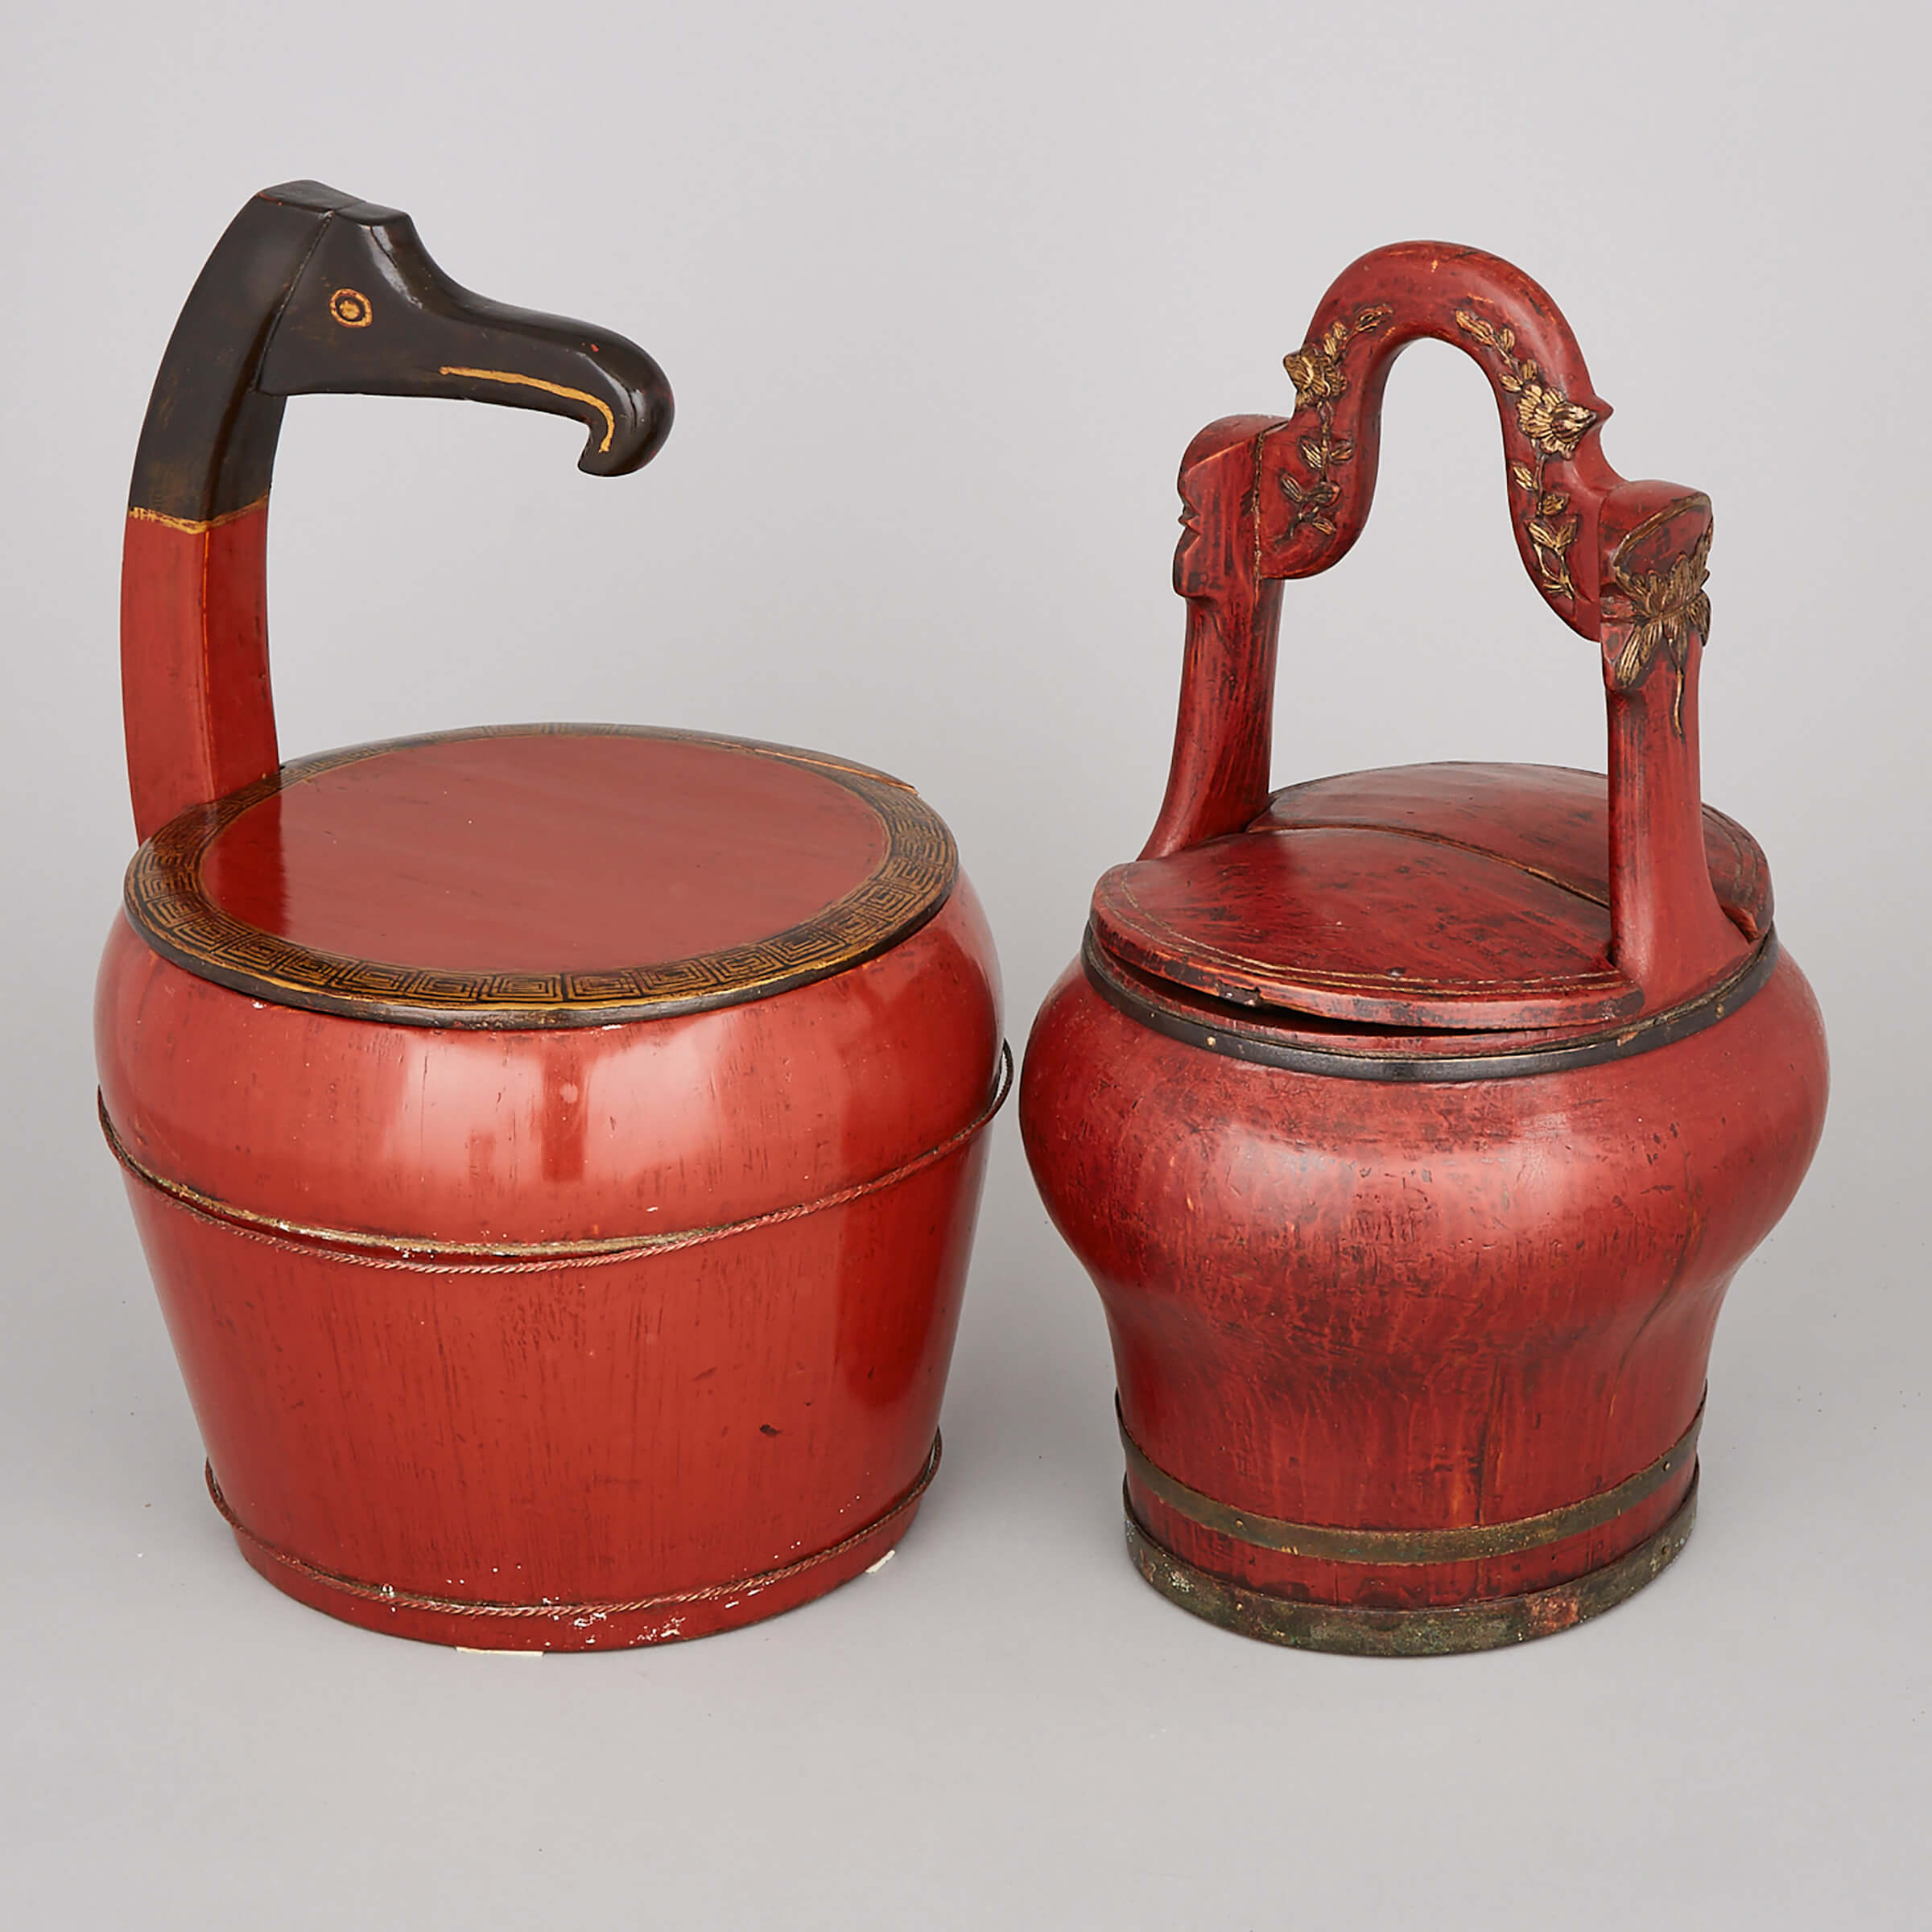 Two Chinese Red Lacquer Pails, 19th Century